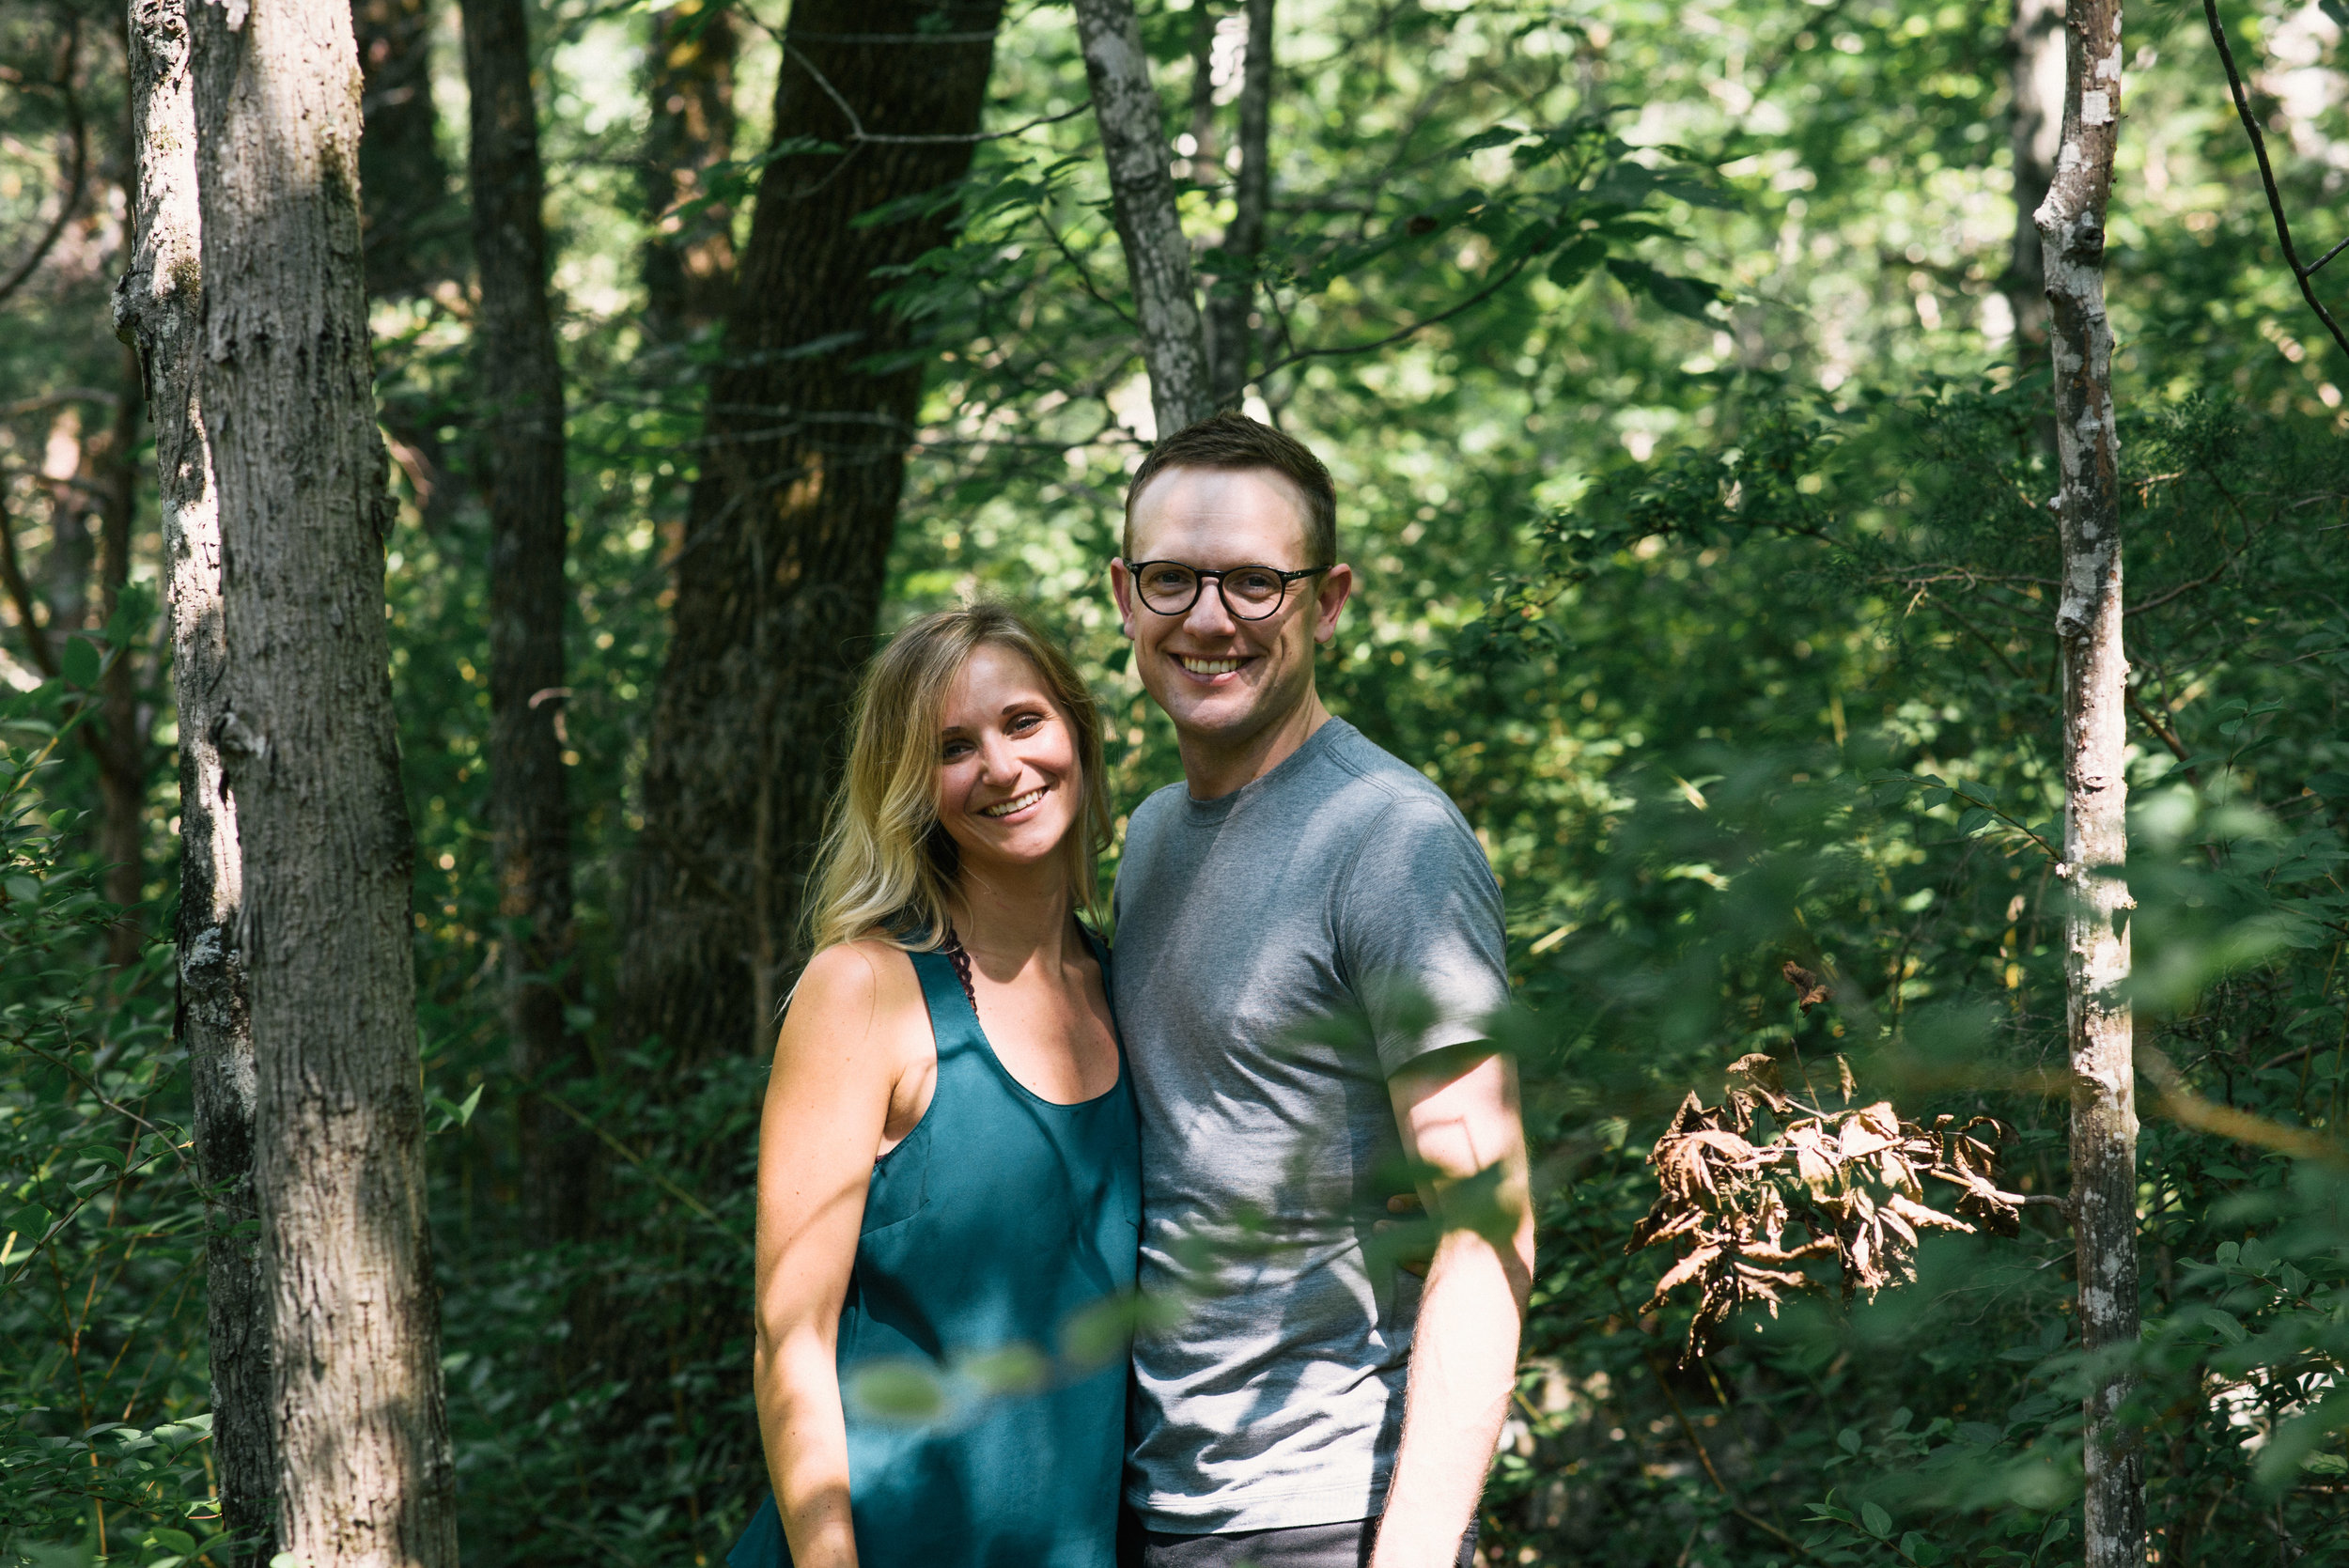 taryn-and-jackson-engagement-save-the-date (194 of 219).jpg